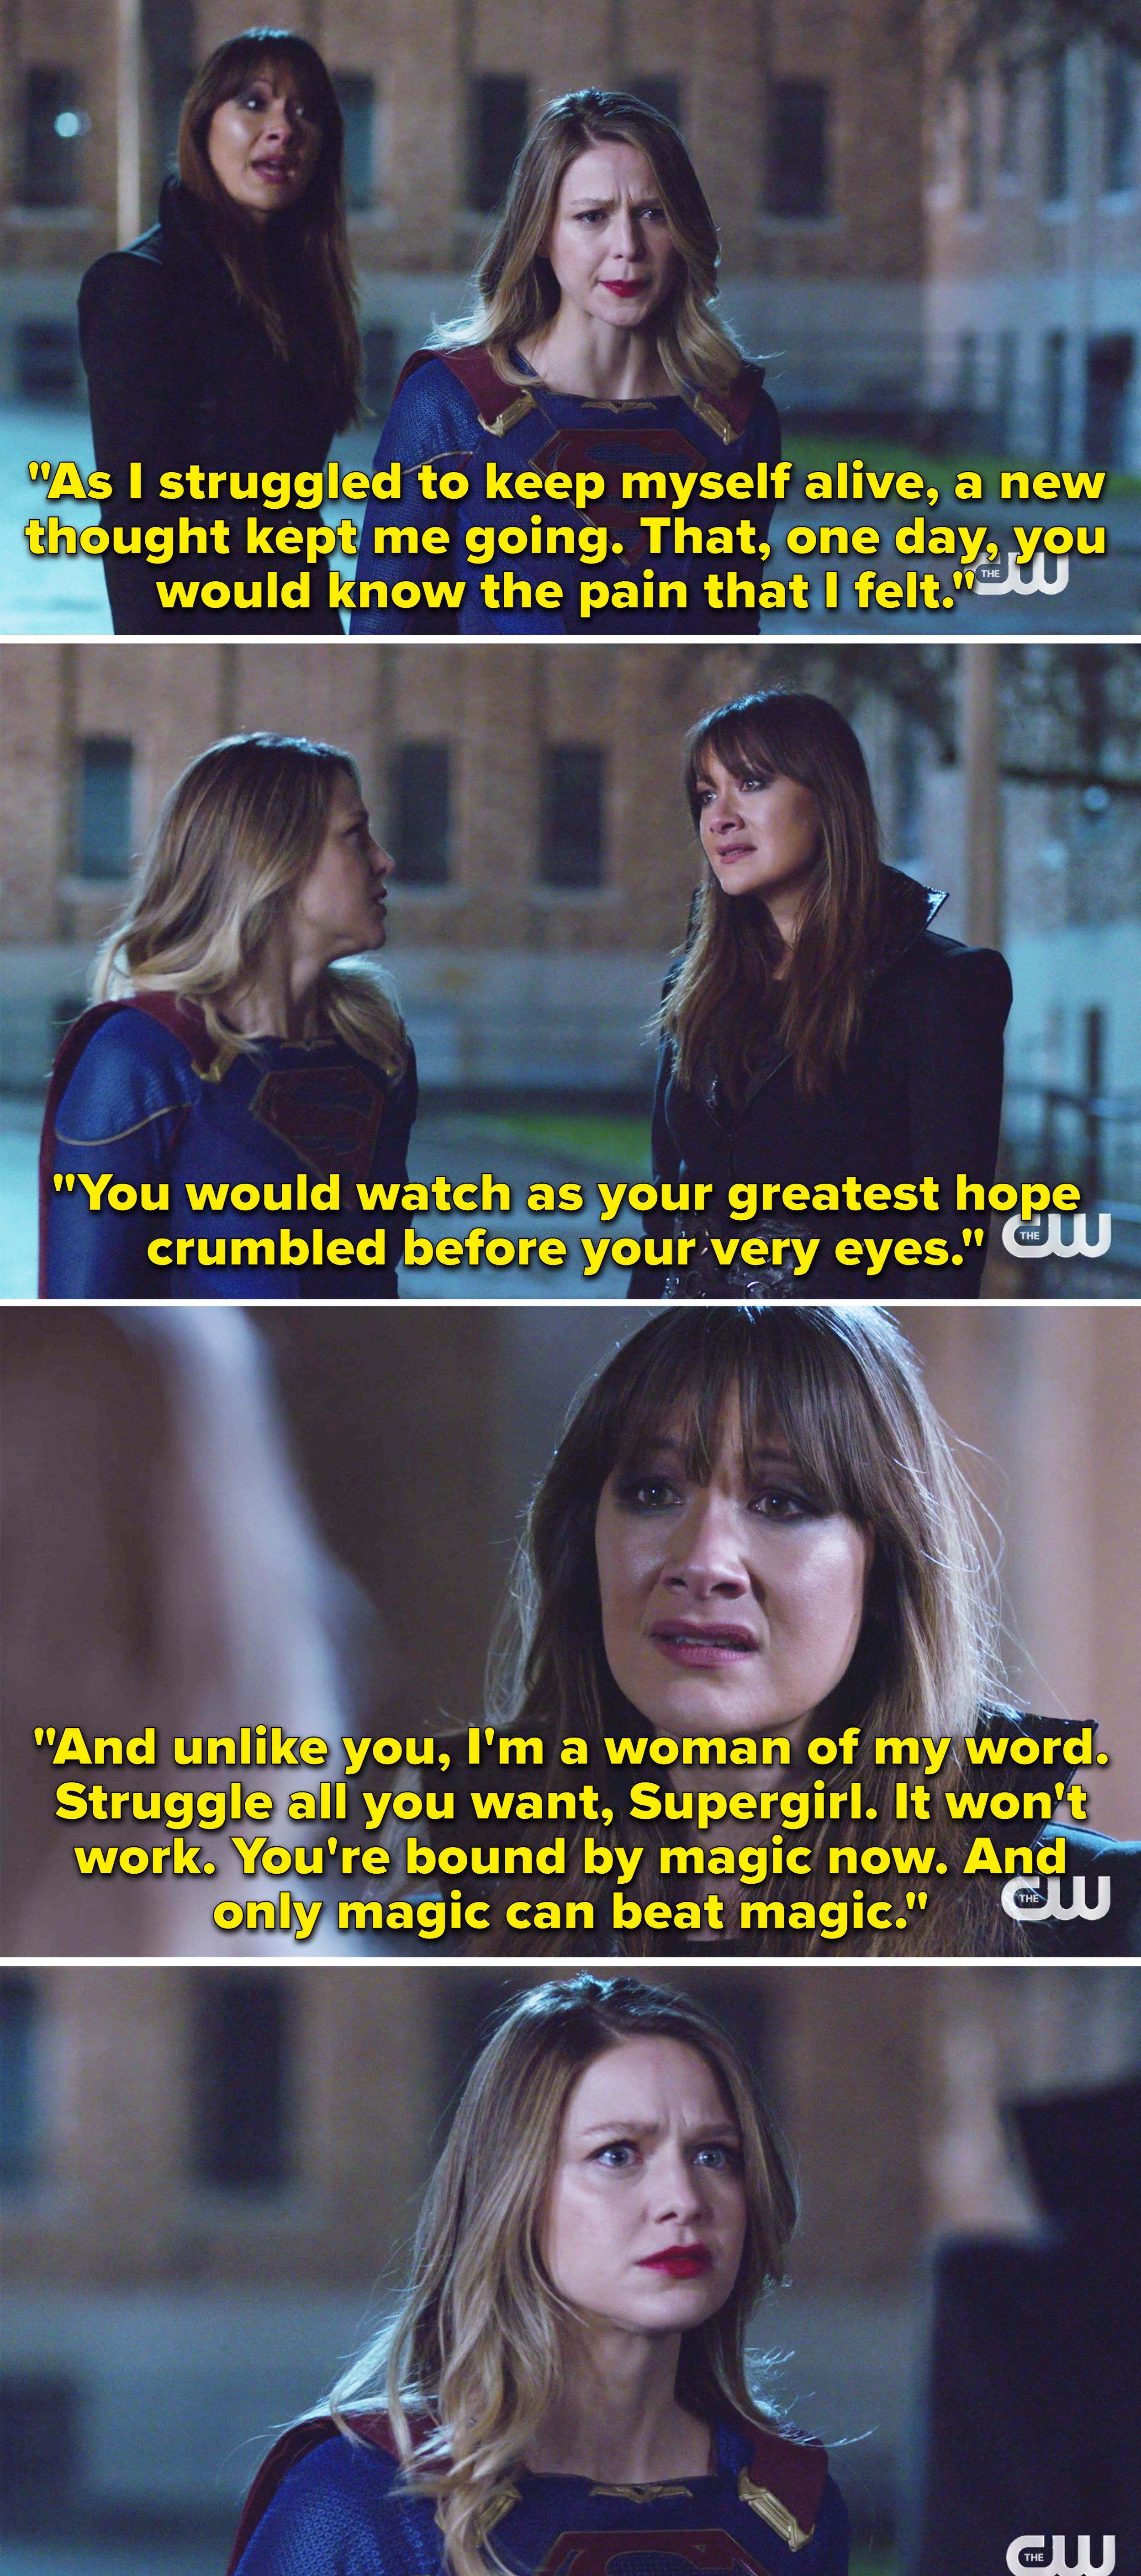 Nyxly telling Supergirl she wants to destroy everything she loves and she can't escape because of magic